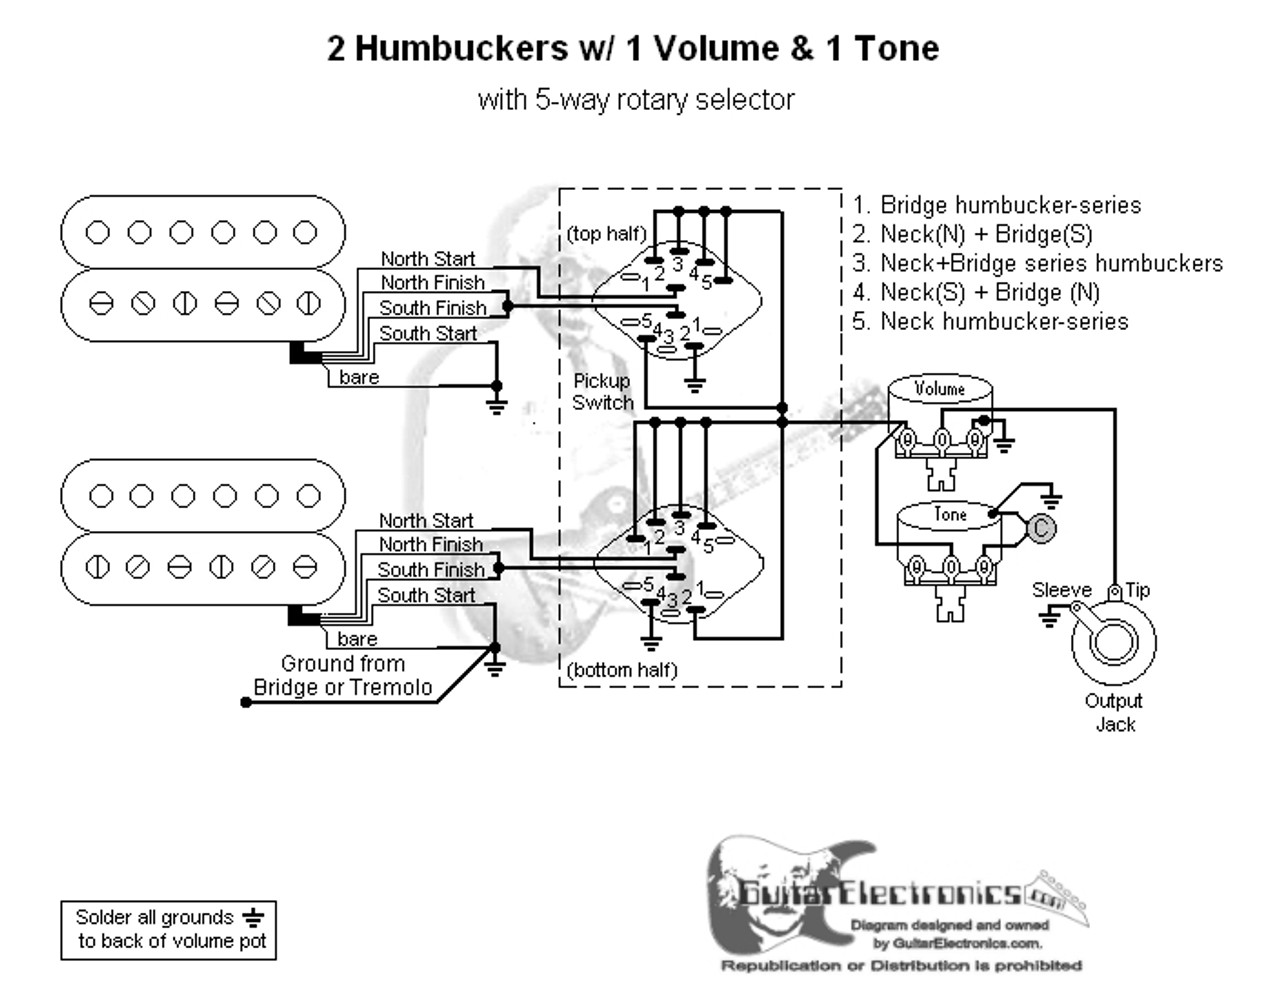 2 humbuckers 5 way rotary switch 1 volume 1 tone 05 Switch Diagram Rotary Wiring Stkr10x